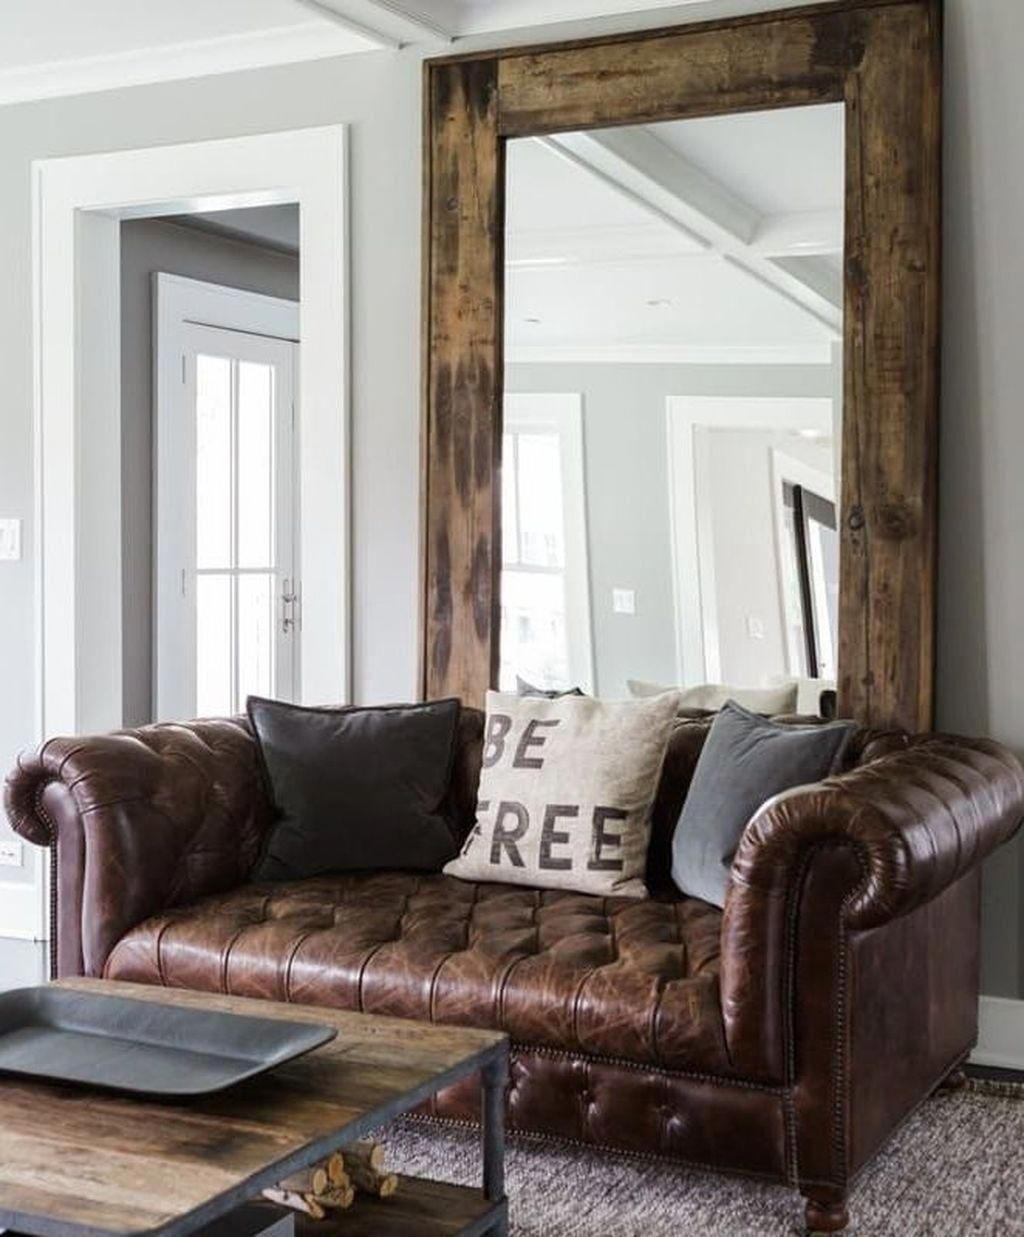 Top 11 Incredible Cozy And Rustic Chic Living Room For: 40+ Amazing Modern Farmhouse Style Decoration Ideas For